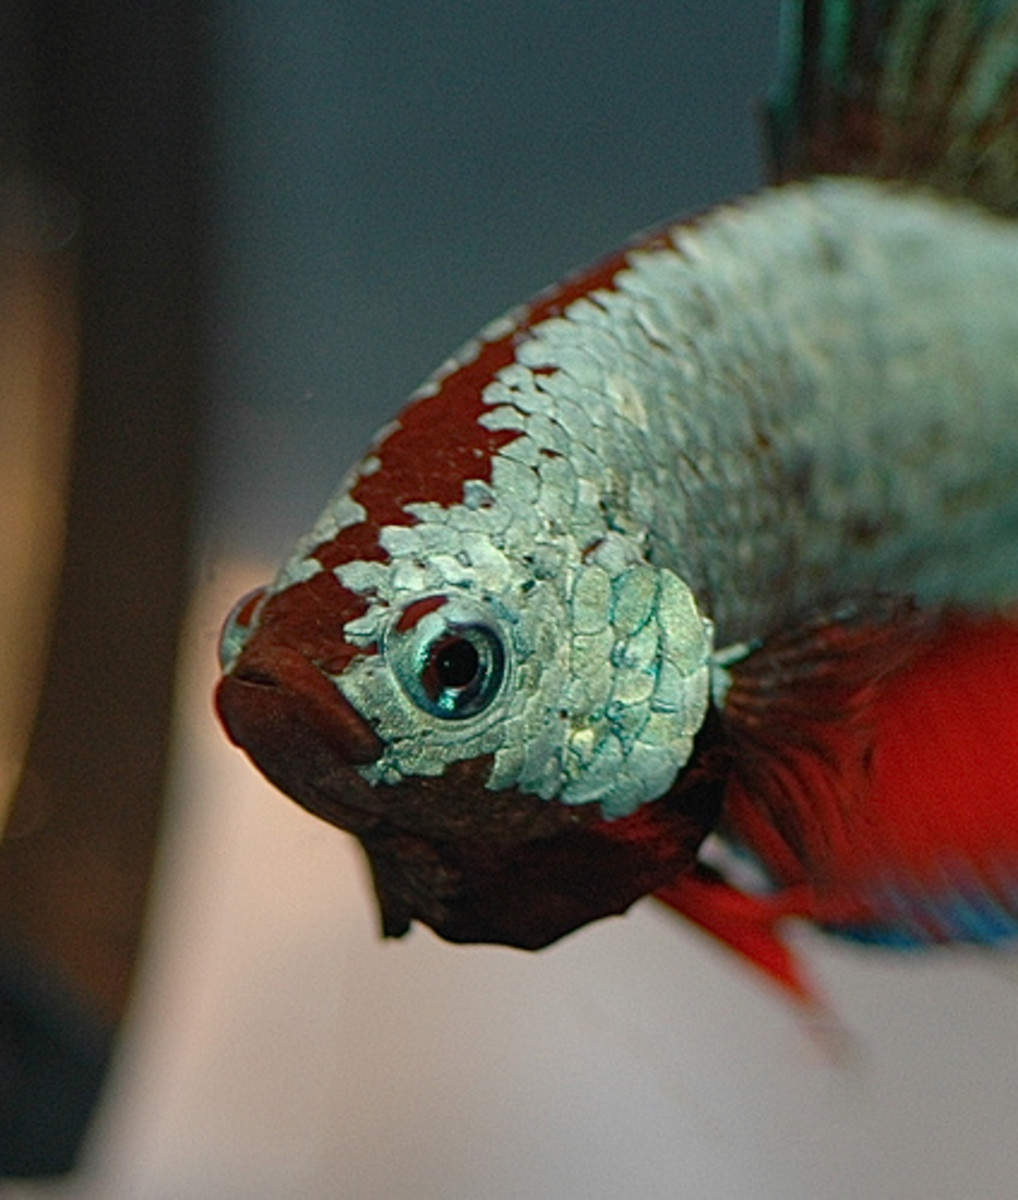 Betta fish can be kept with ADF's as long as there is no aggression between them.